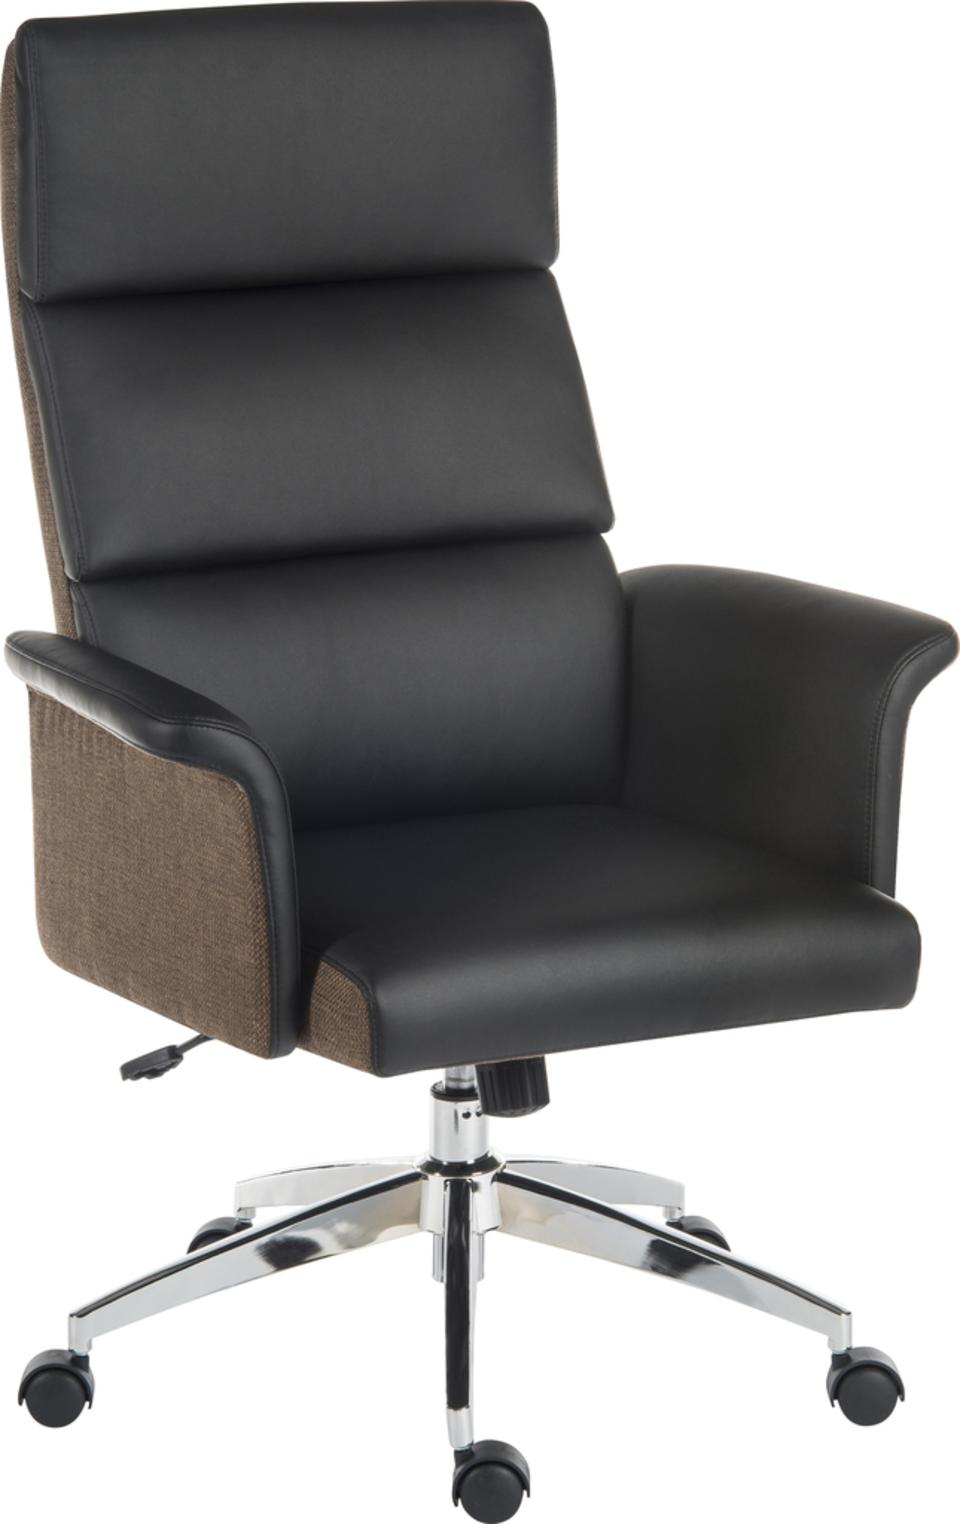 Elegance High Back Executive Chair